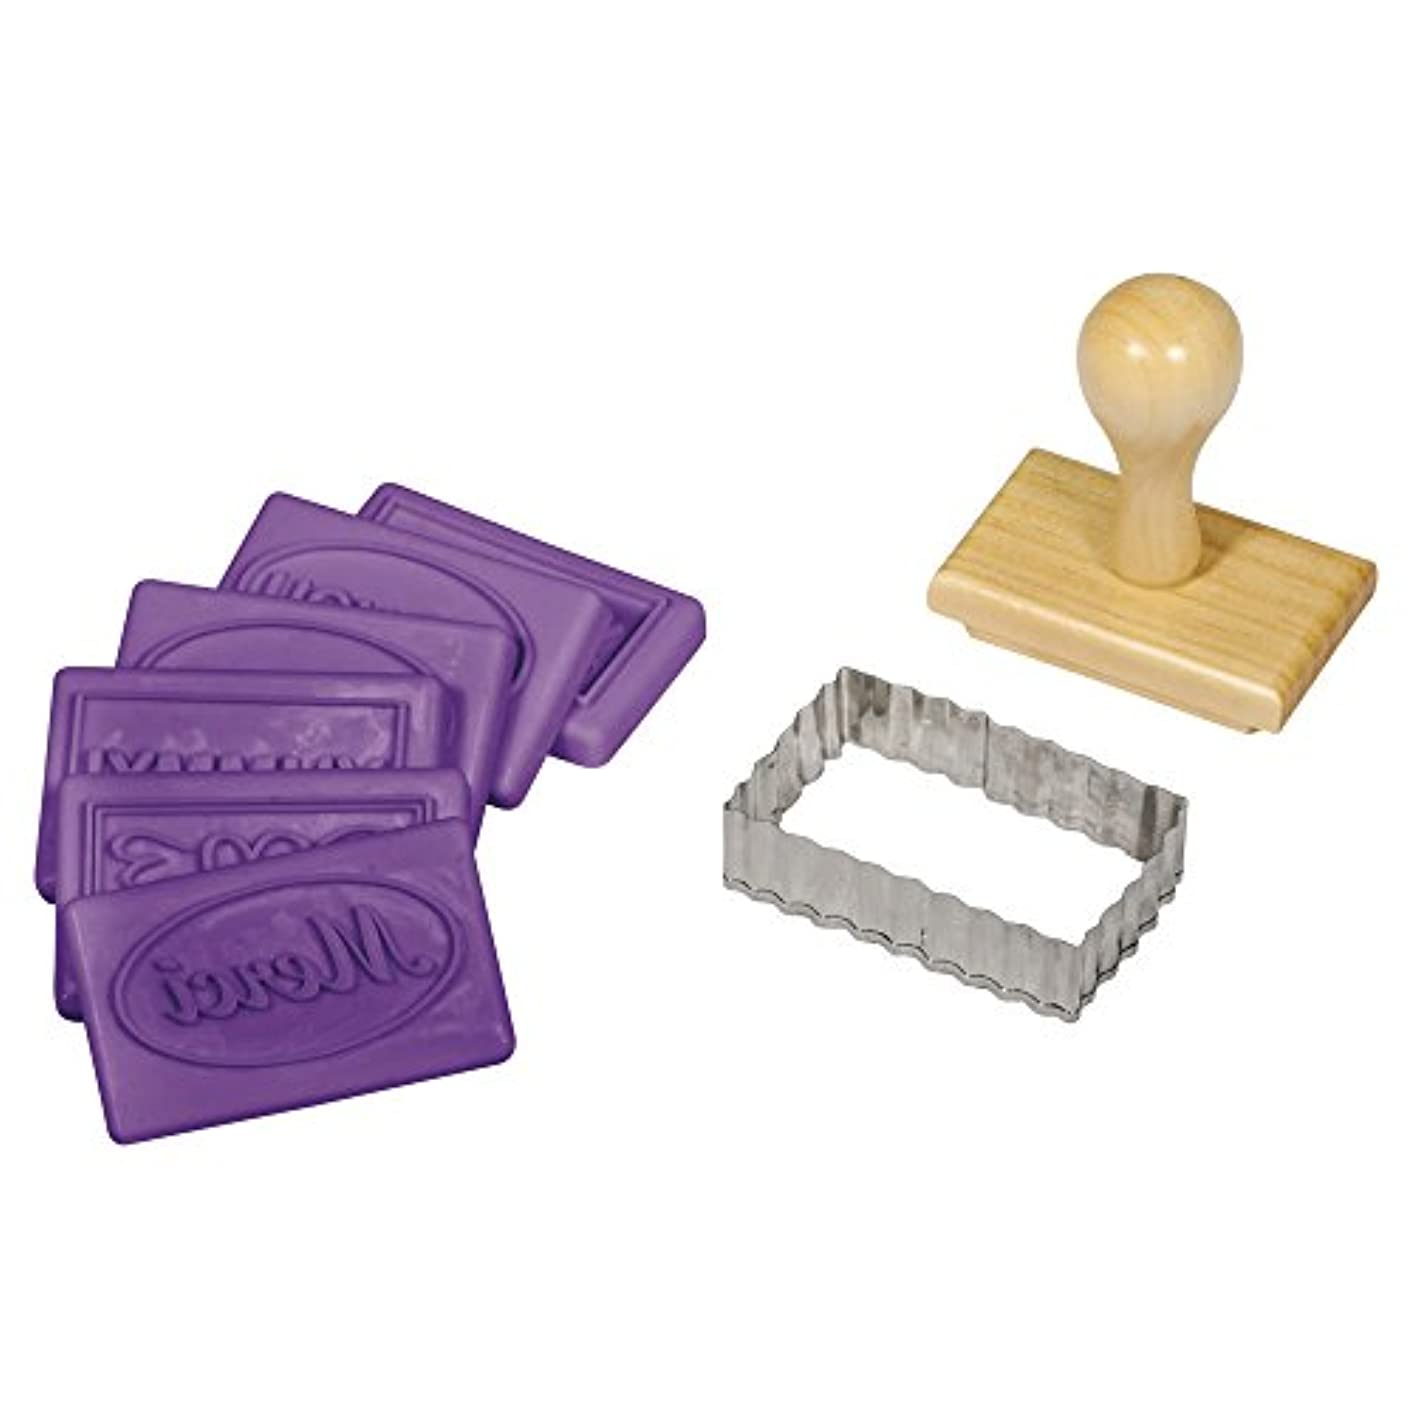 RAYHER HOBBY Love More Set Cookie Stamps, Wood, Brown, 23 x 10.5 x 7.5 cm